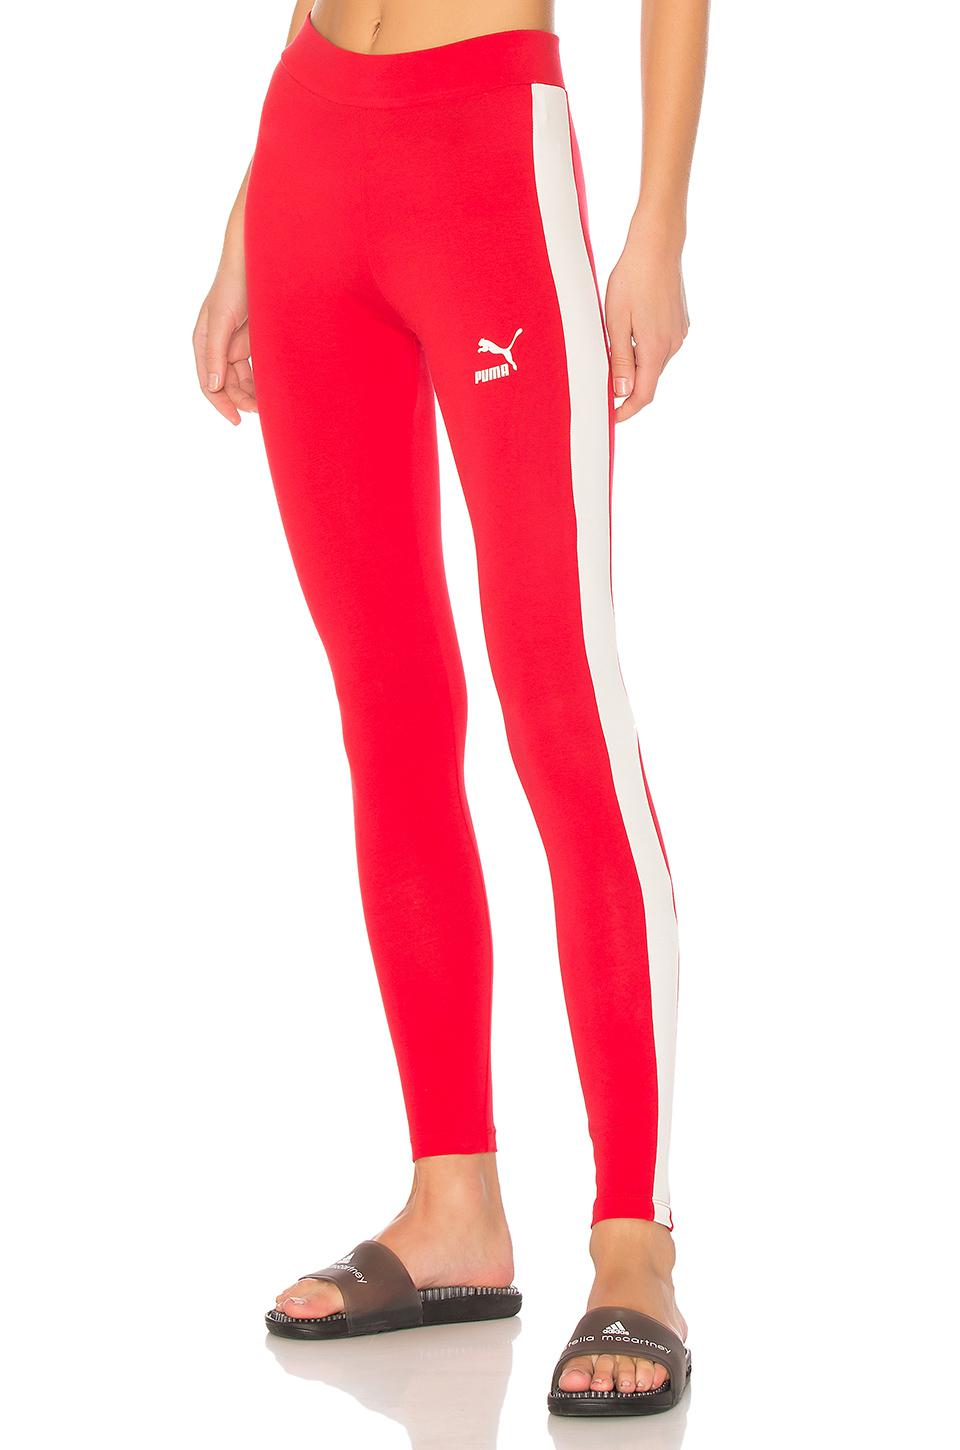 0bb6ed09e8603 PUMA Archive Logo T7 Legging in Red - Lyst